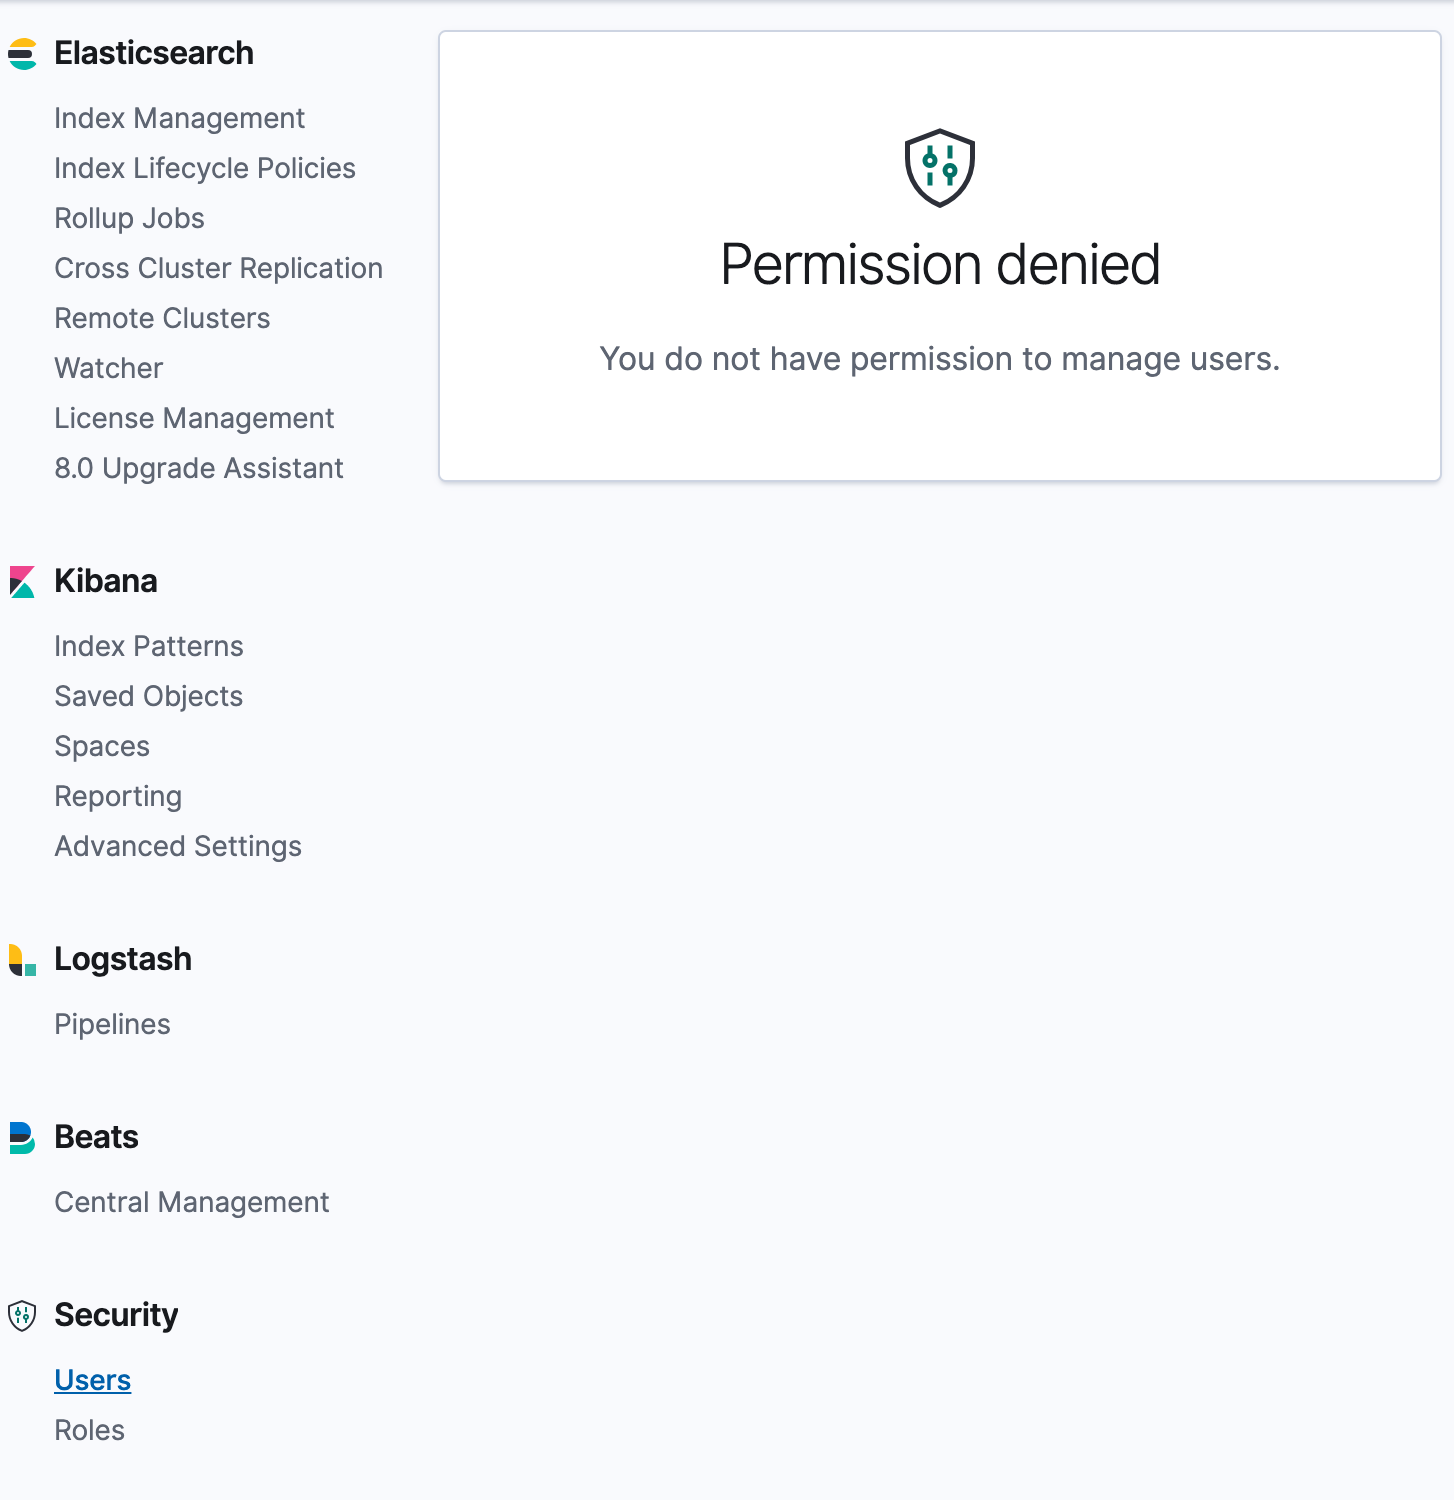 Align wrong/missing permissions messages on Management UI